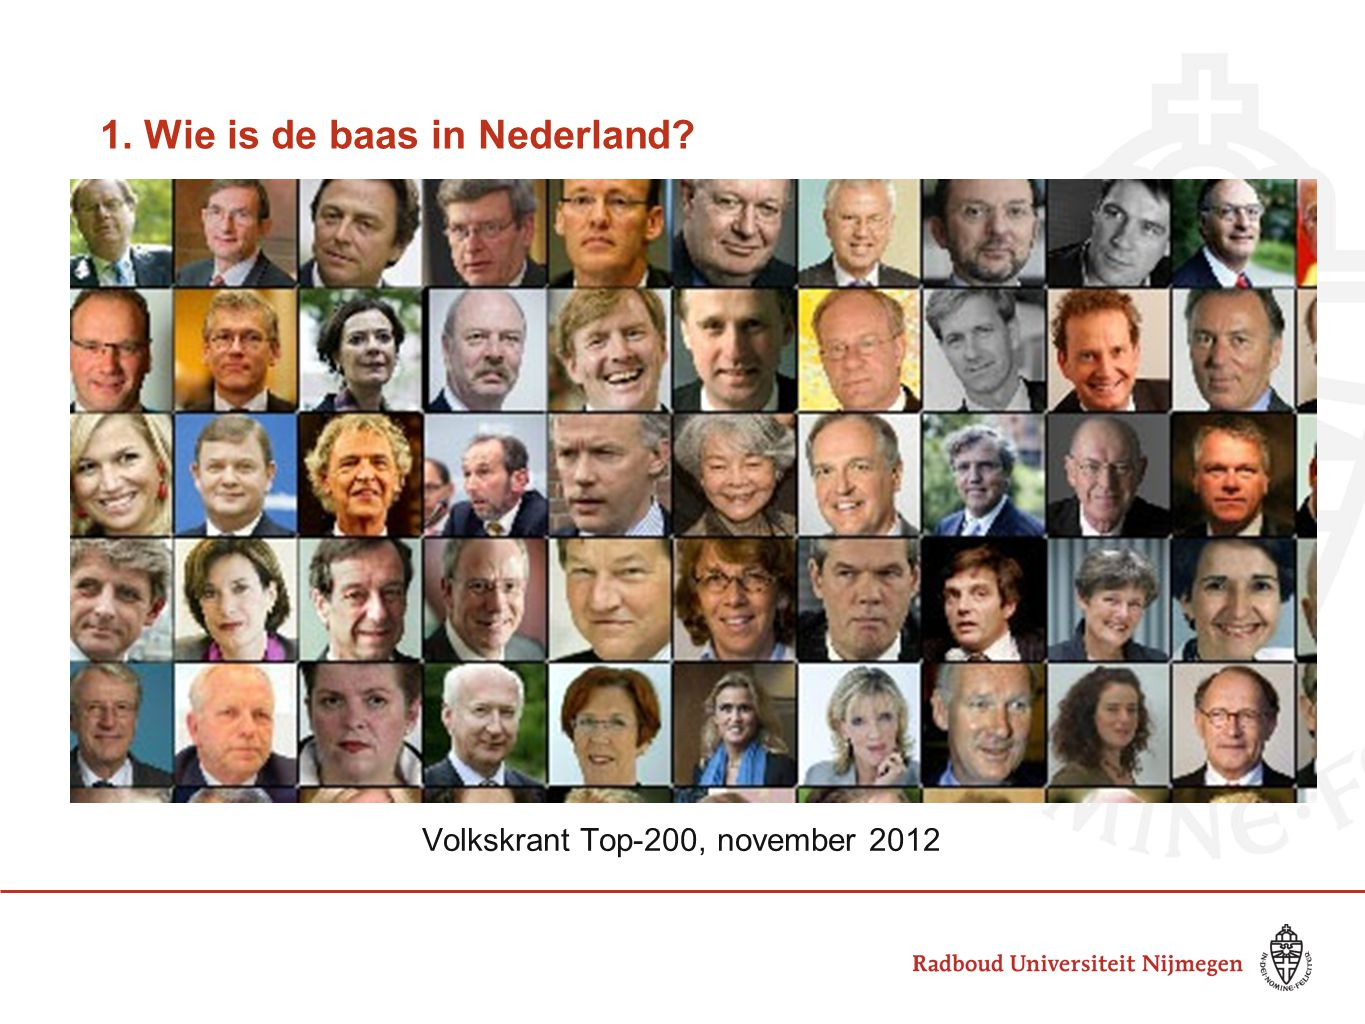 1. Wie is de baas in Nederland